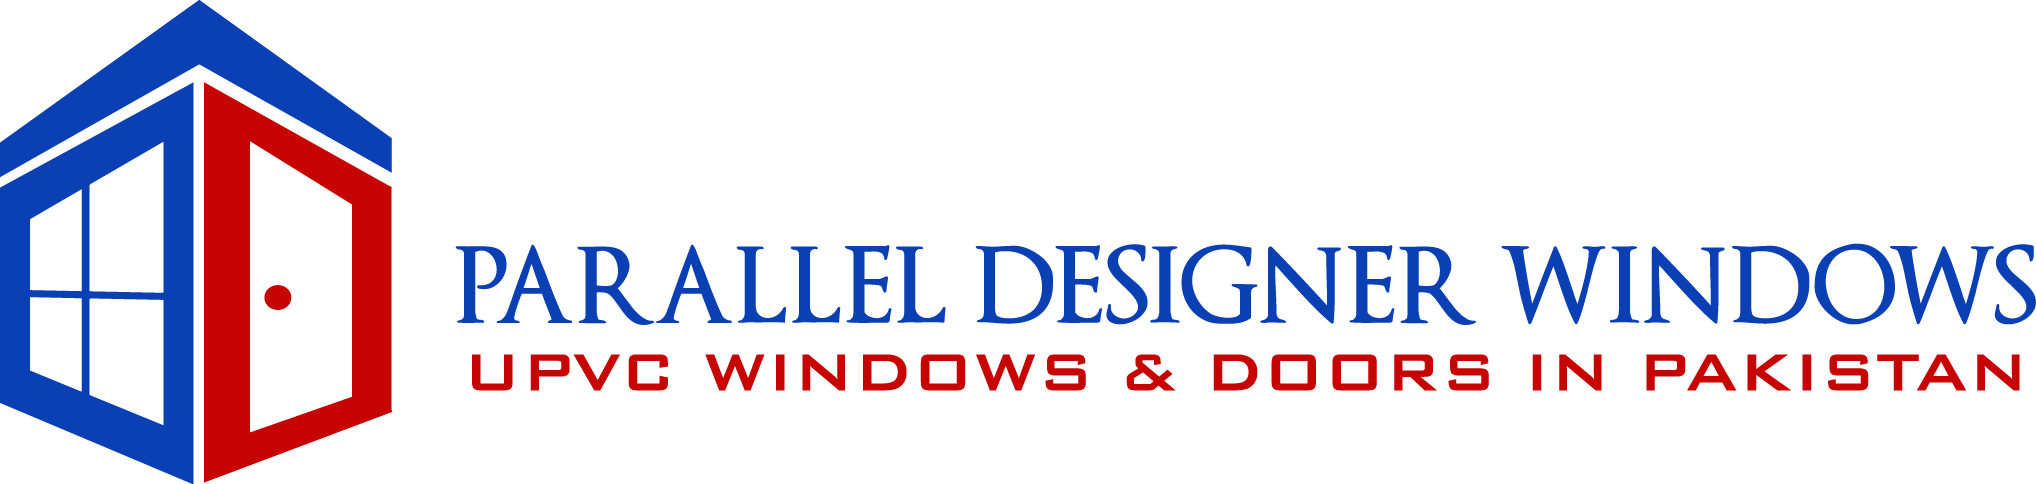 Parallel Designer Windows